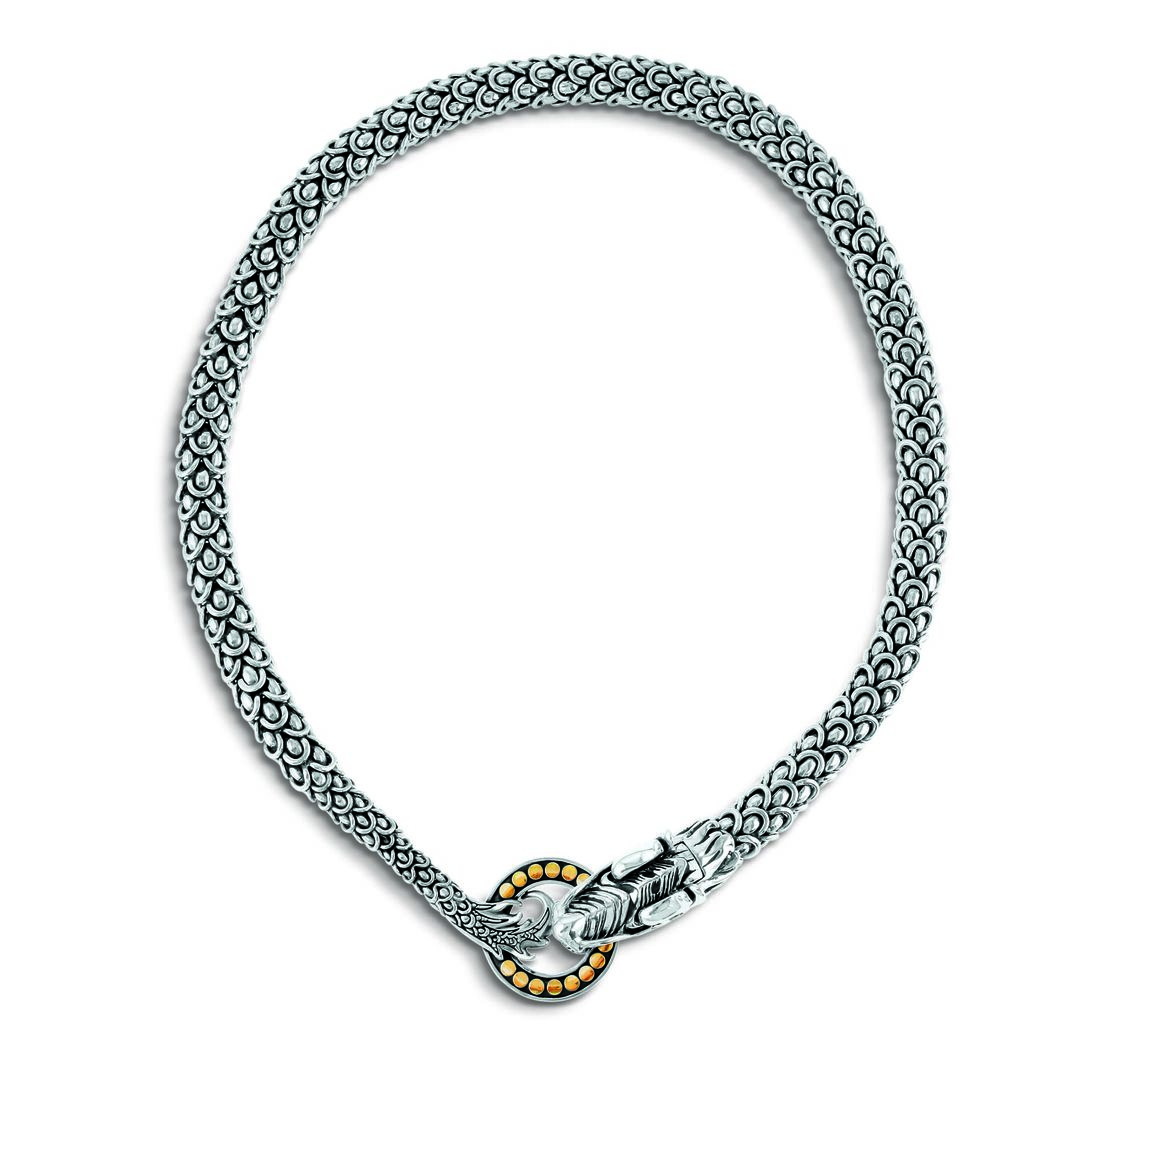 Legends Naga 11MM  Necklace in Silver and 18K Gold